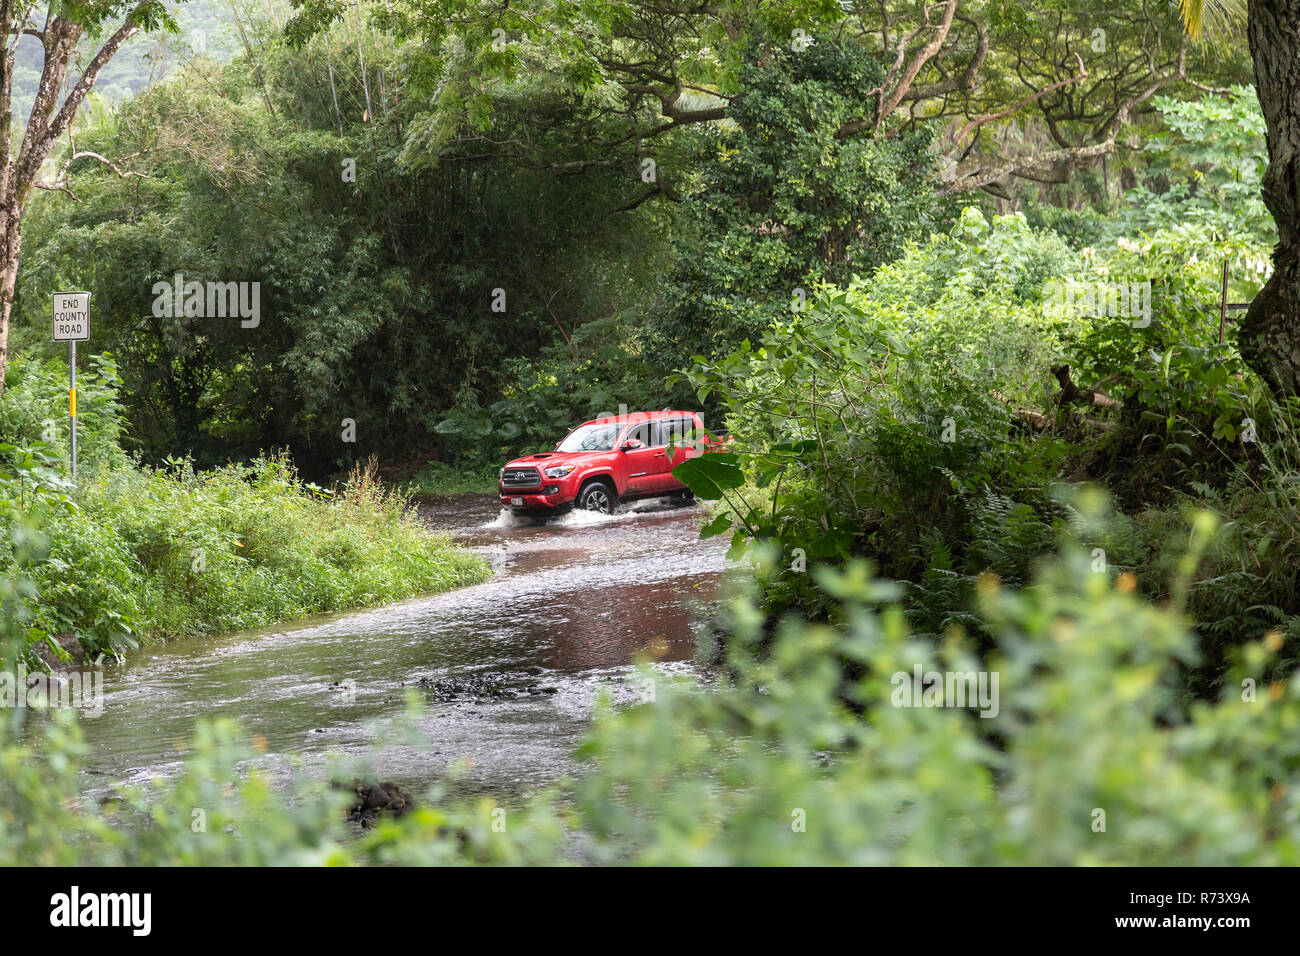 A truck crosses a stream during a rainstorm in the Waipi'o Valley on the Big Island of Hawaii. - Stock Image